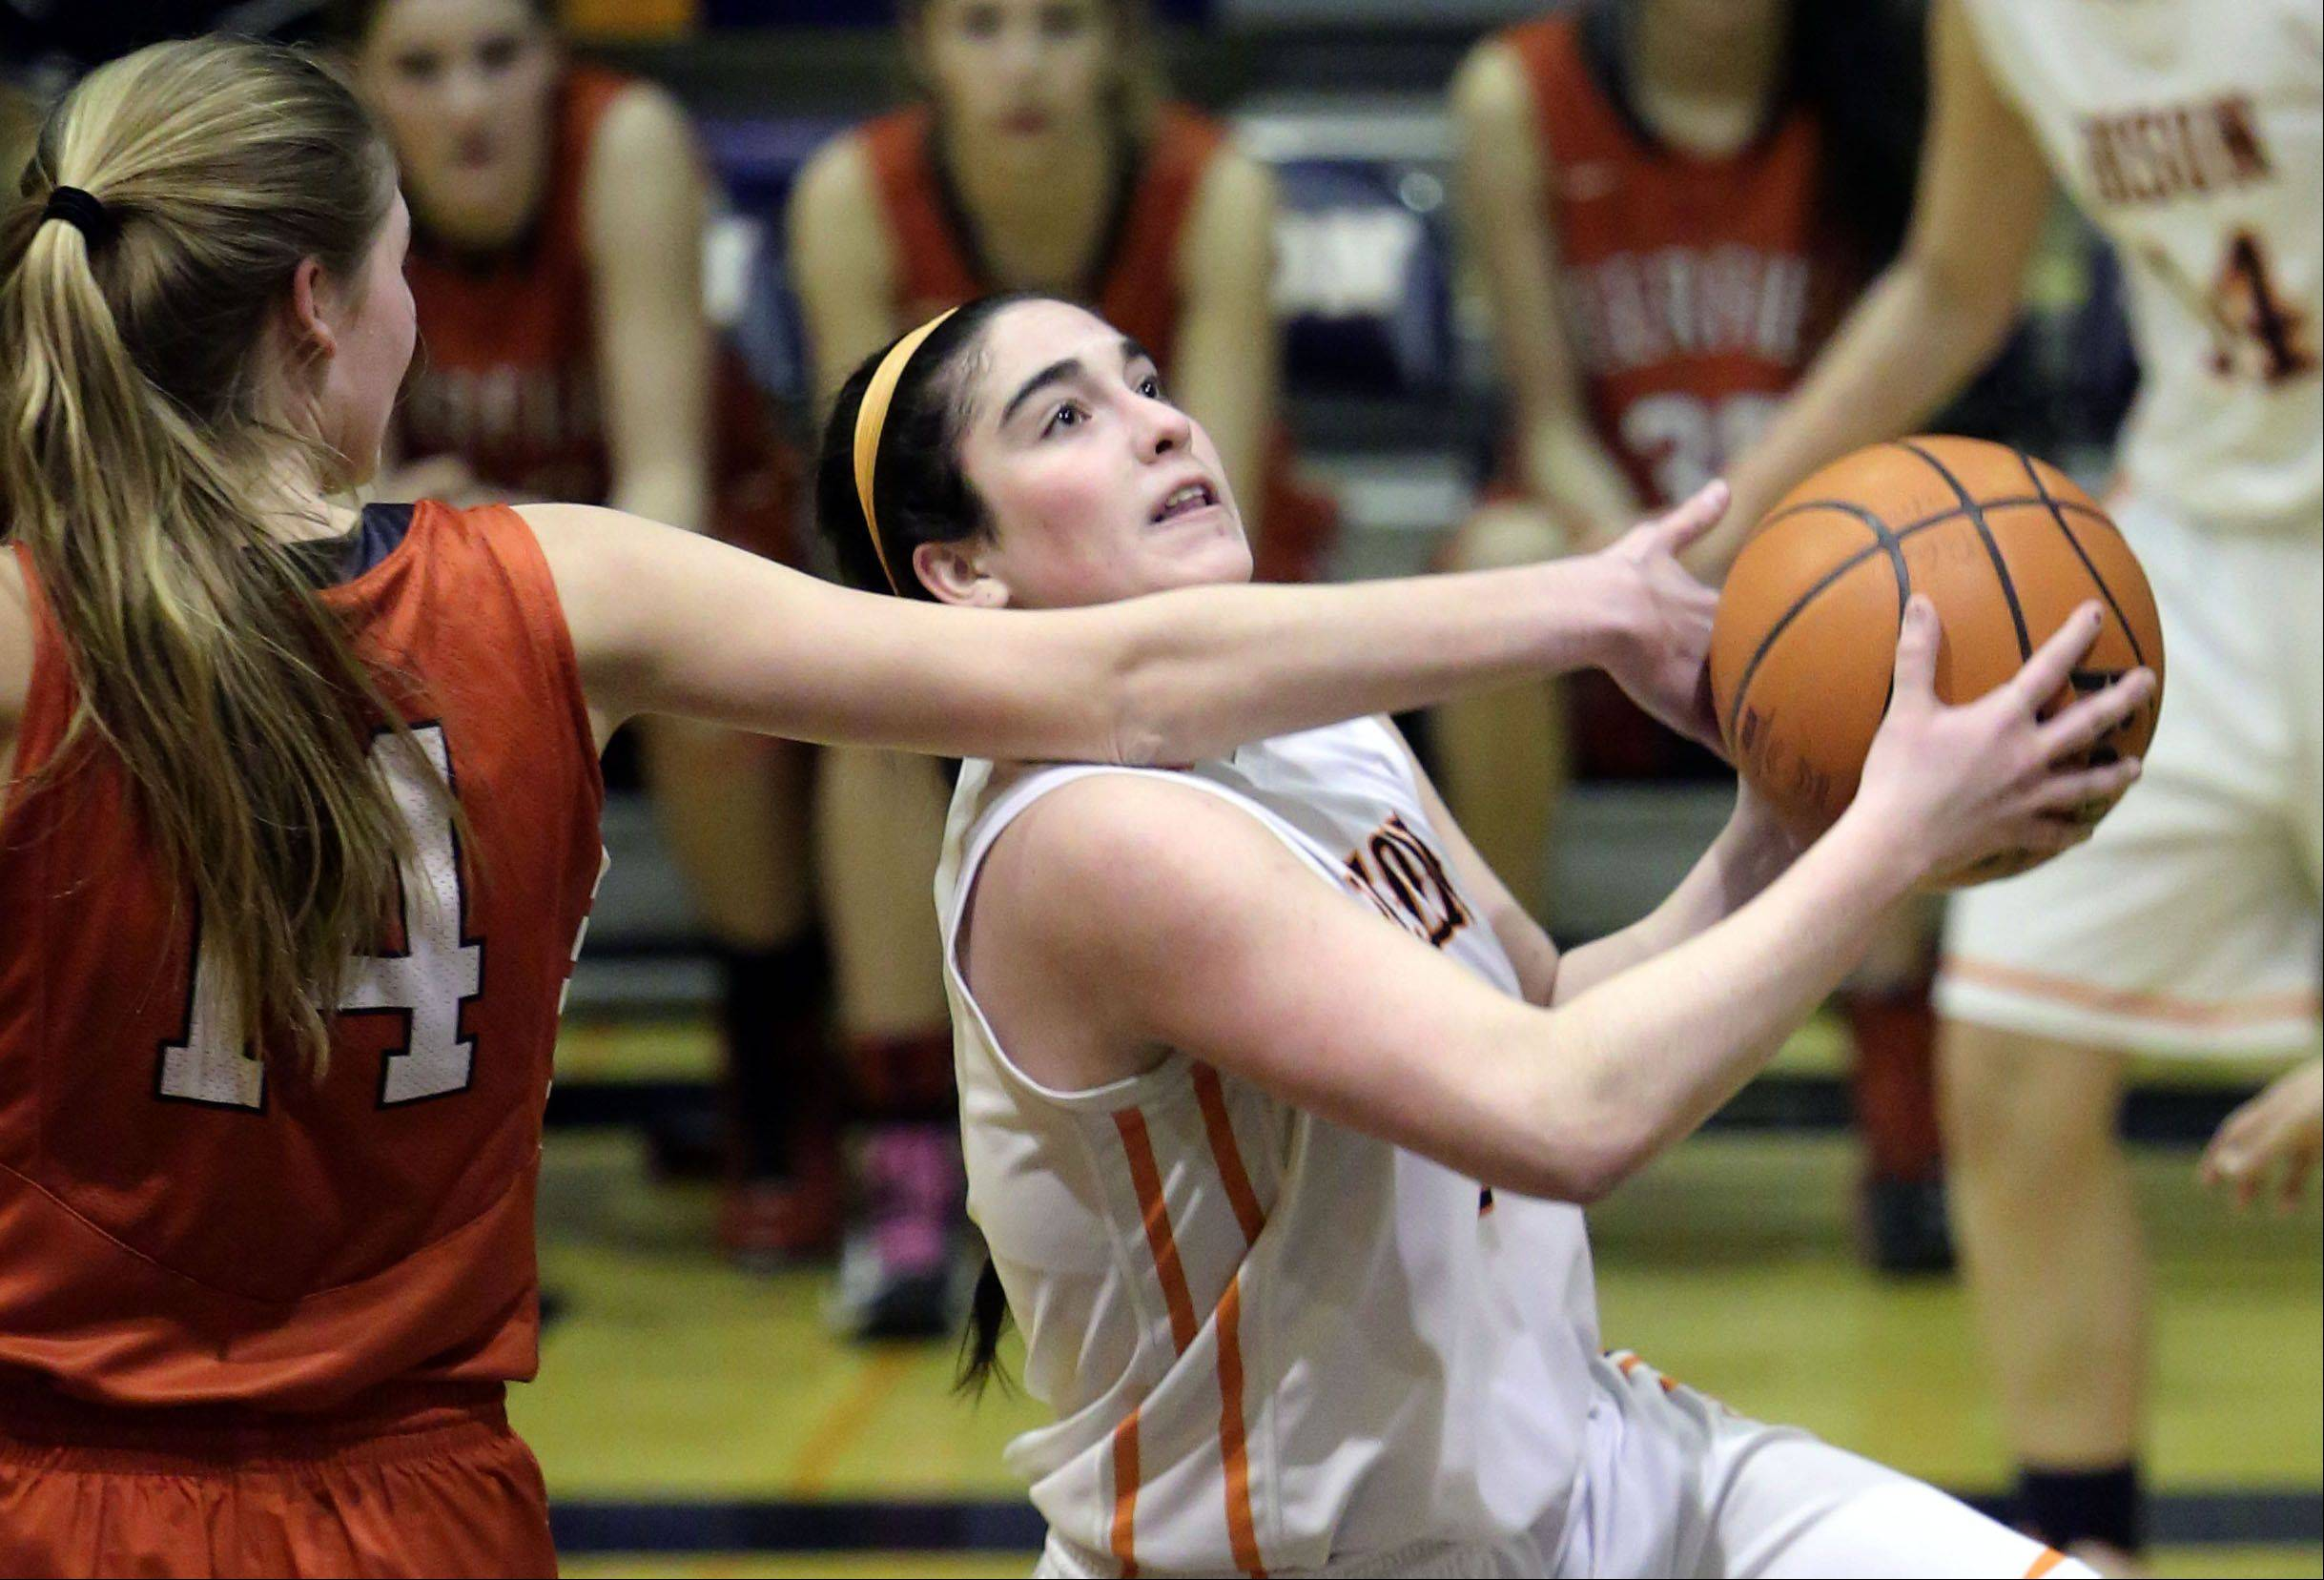 Buffalo Grove�s Julie Jambrone, right, powers past Deerfield�s Monica Fishbein during Monday�s game in Buffalo Grove.